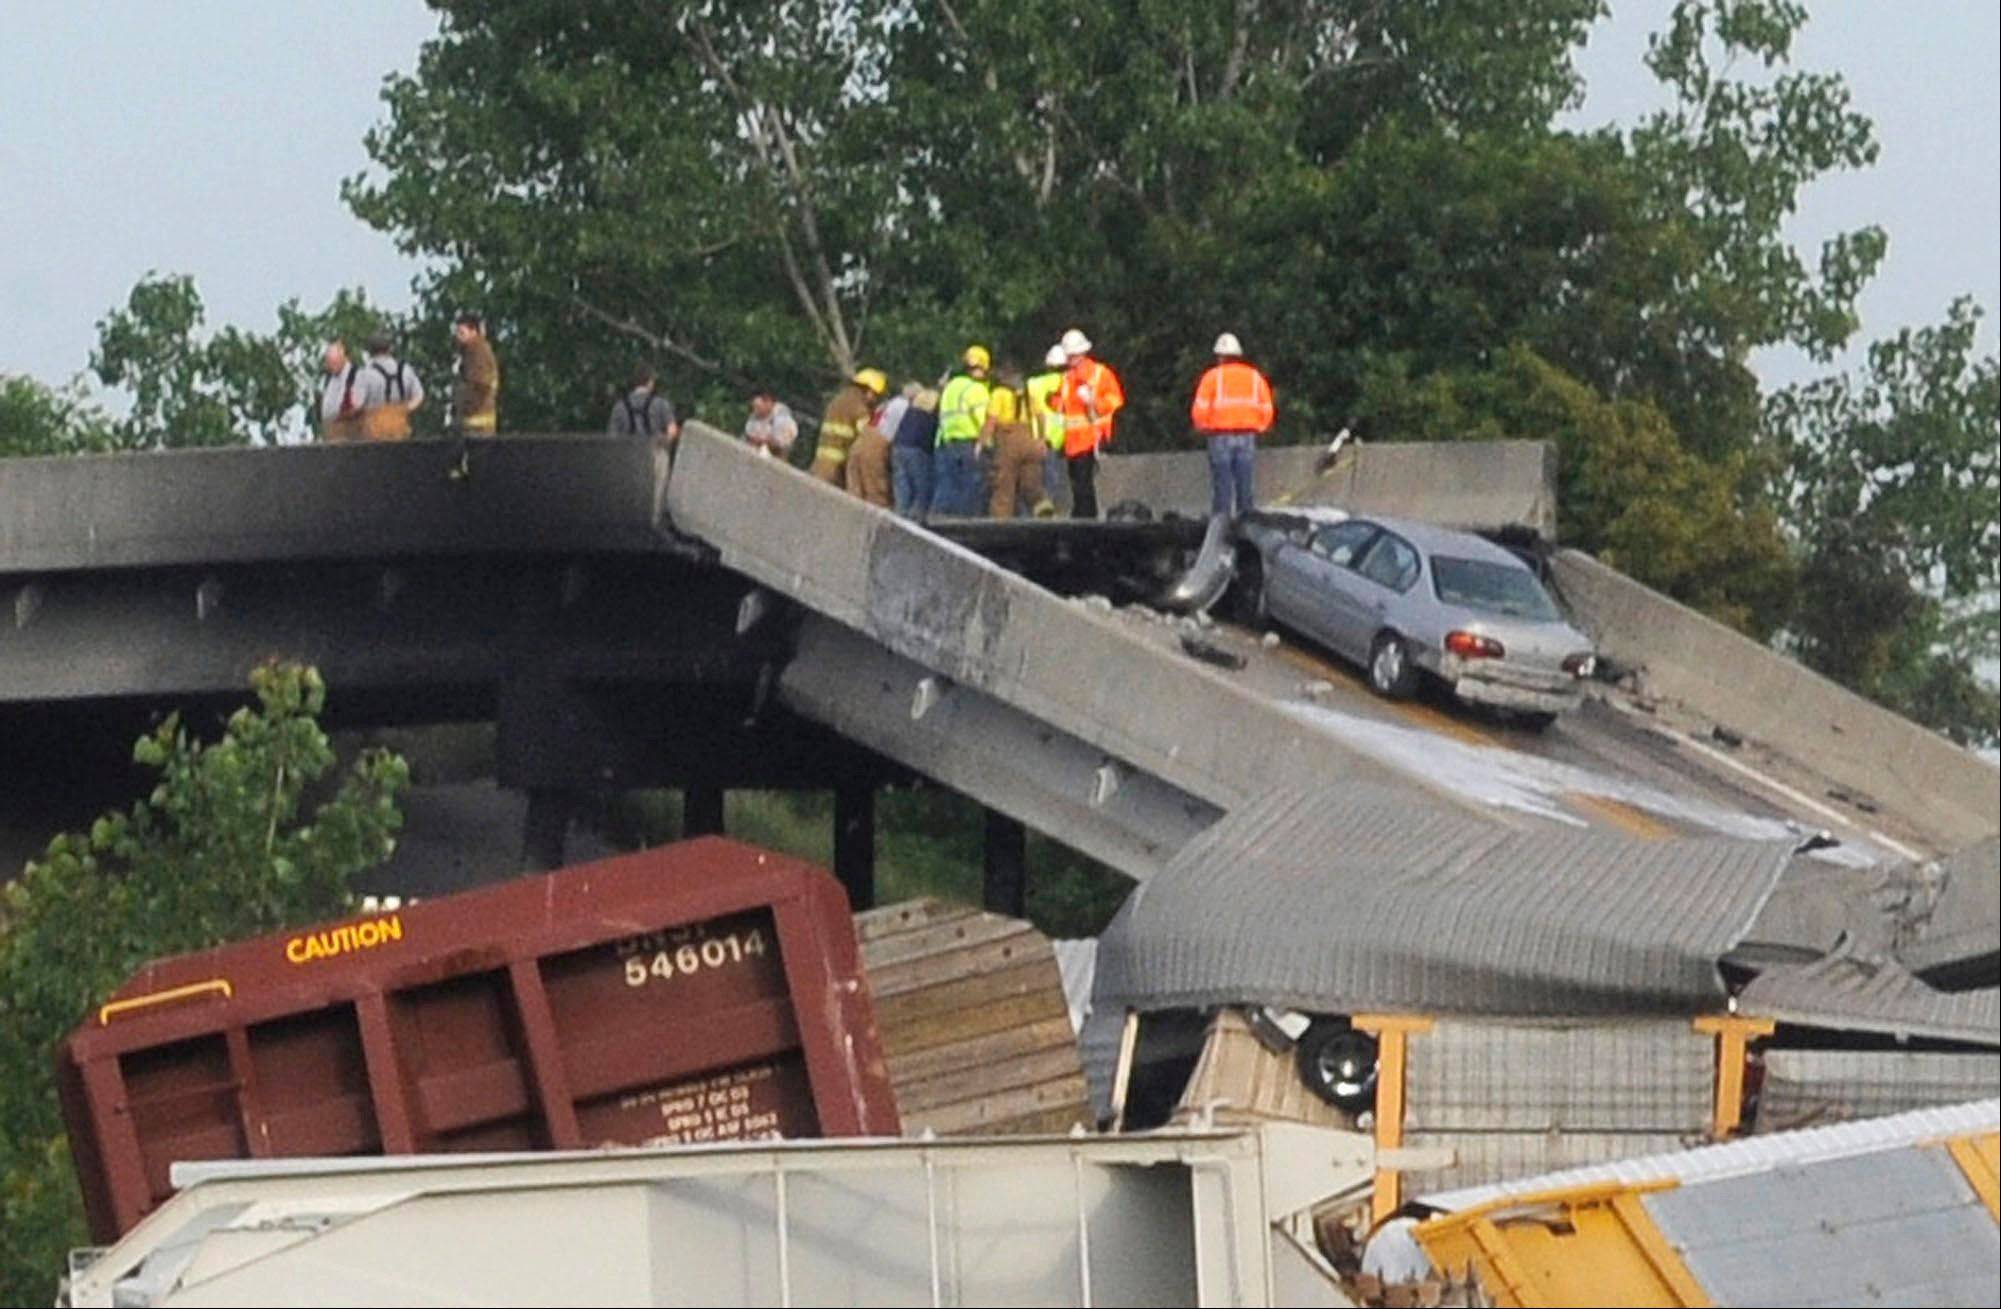 Emergency personnel take control Saturday at the scene of a train derailment near Rockview, Mo. The National Transportation Safety Board has launched an investigation into the cause of the cargo train collision that partially collapsed a highway overpass.